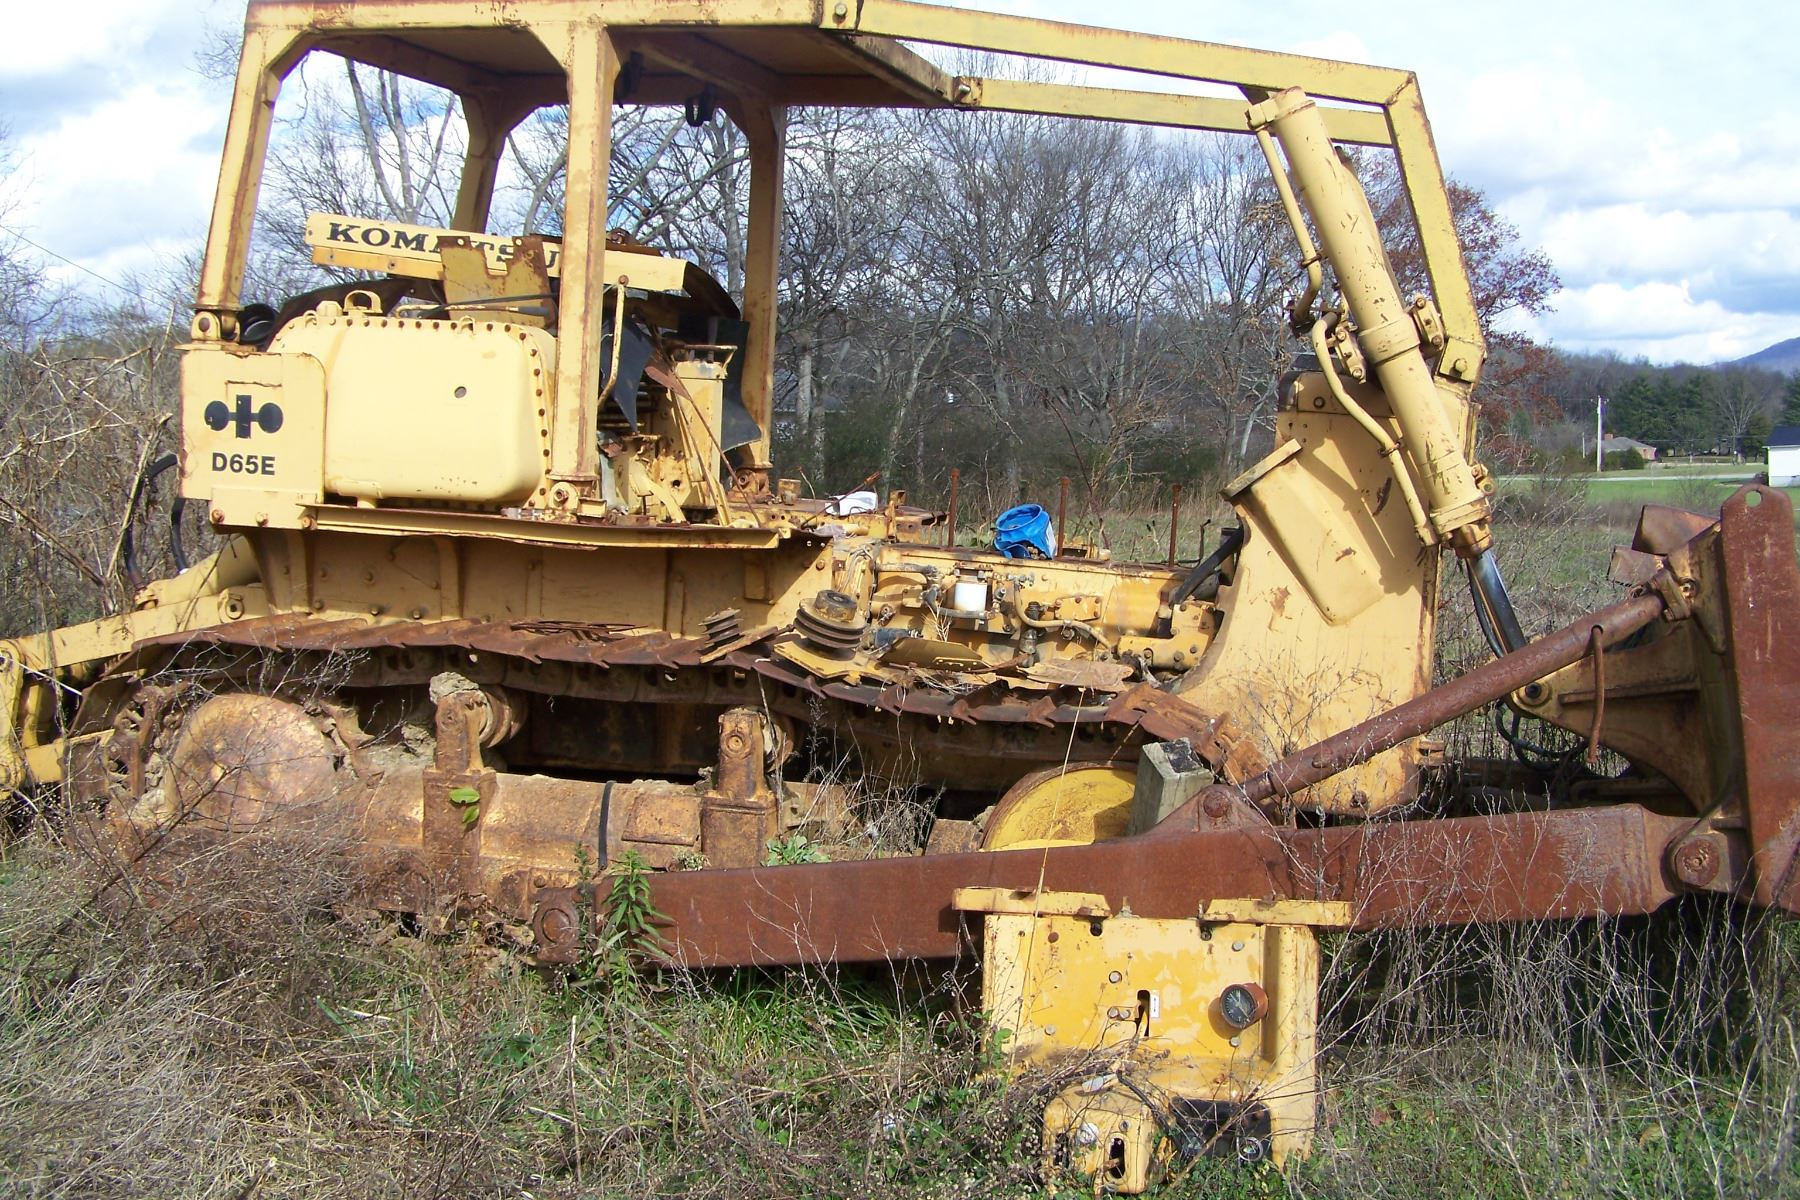 KOMATSU D65E DOZER, SALVAGE, MOTOR PARTS MISSING, HAS 4 SHANK